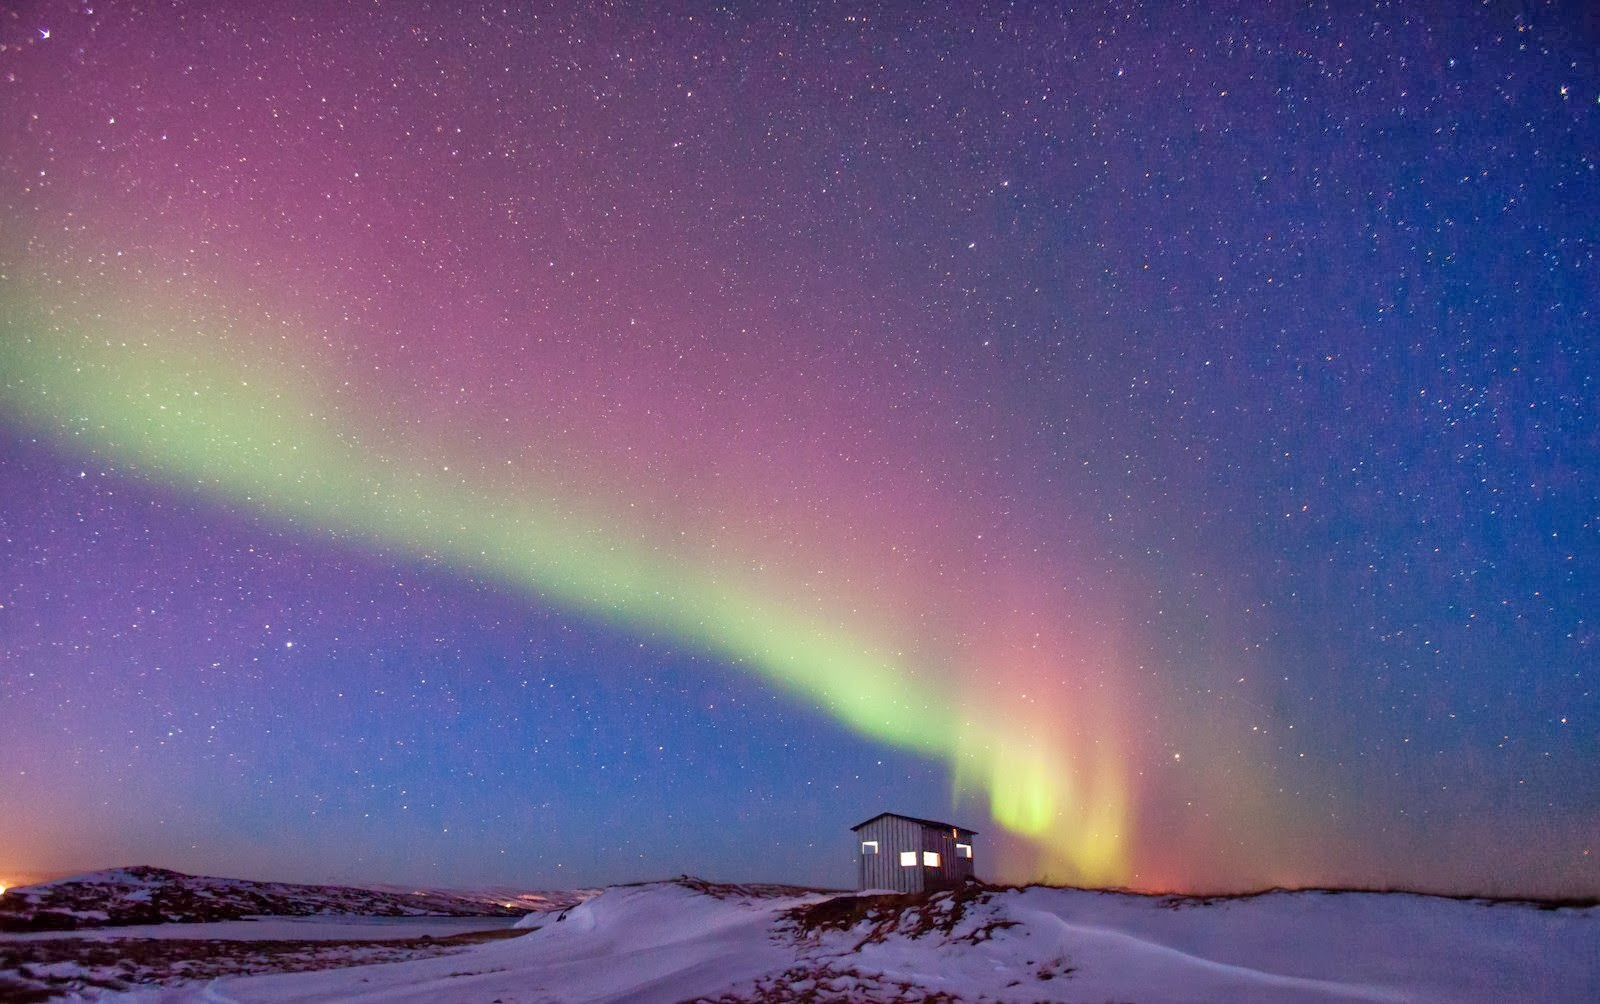 Travel in Iceland between Volcanoes, Glaciers and Northern Lights